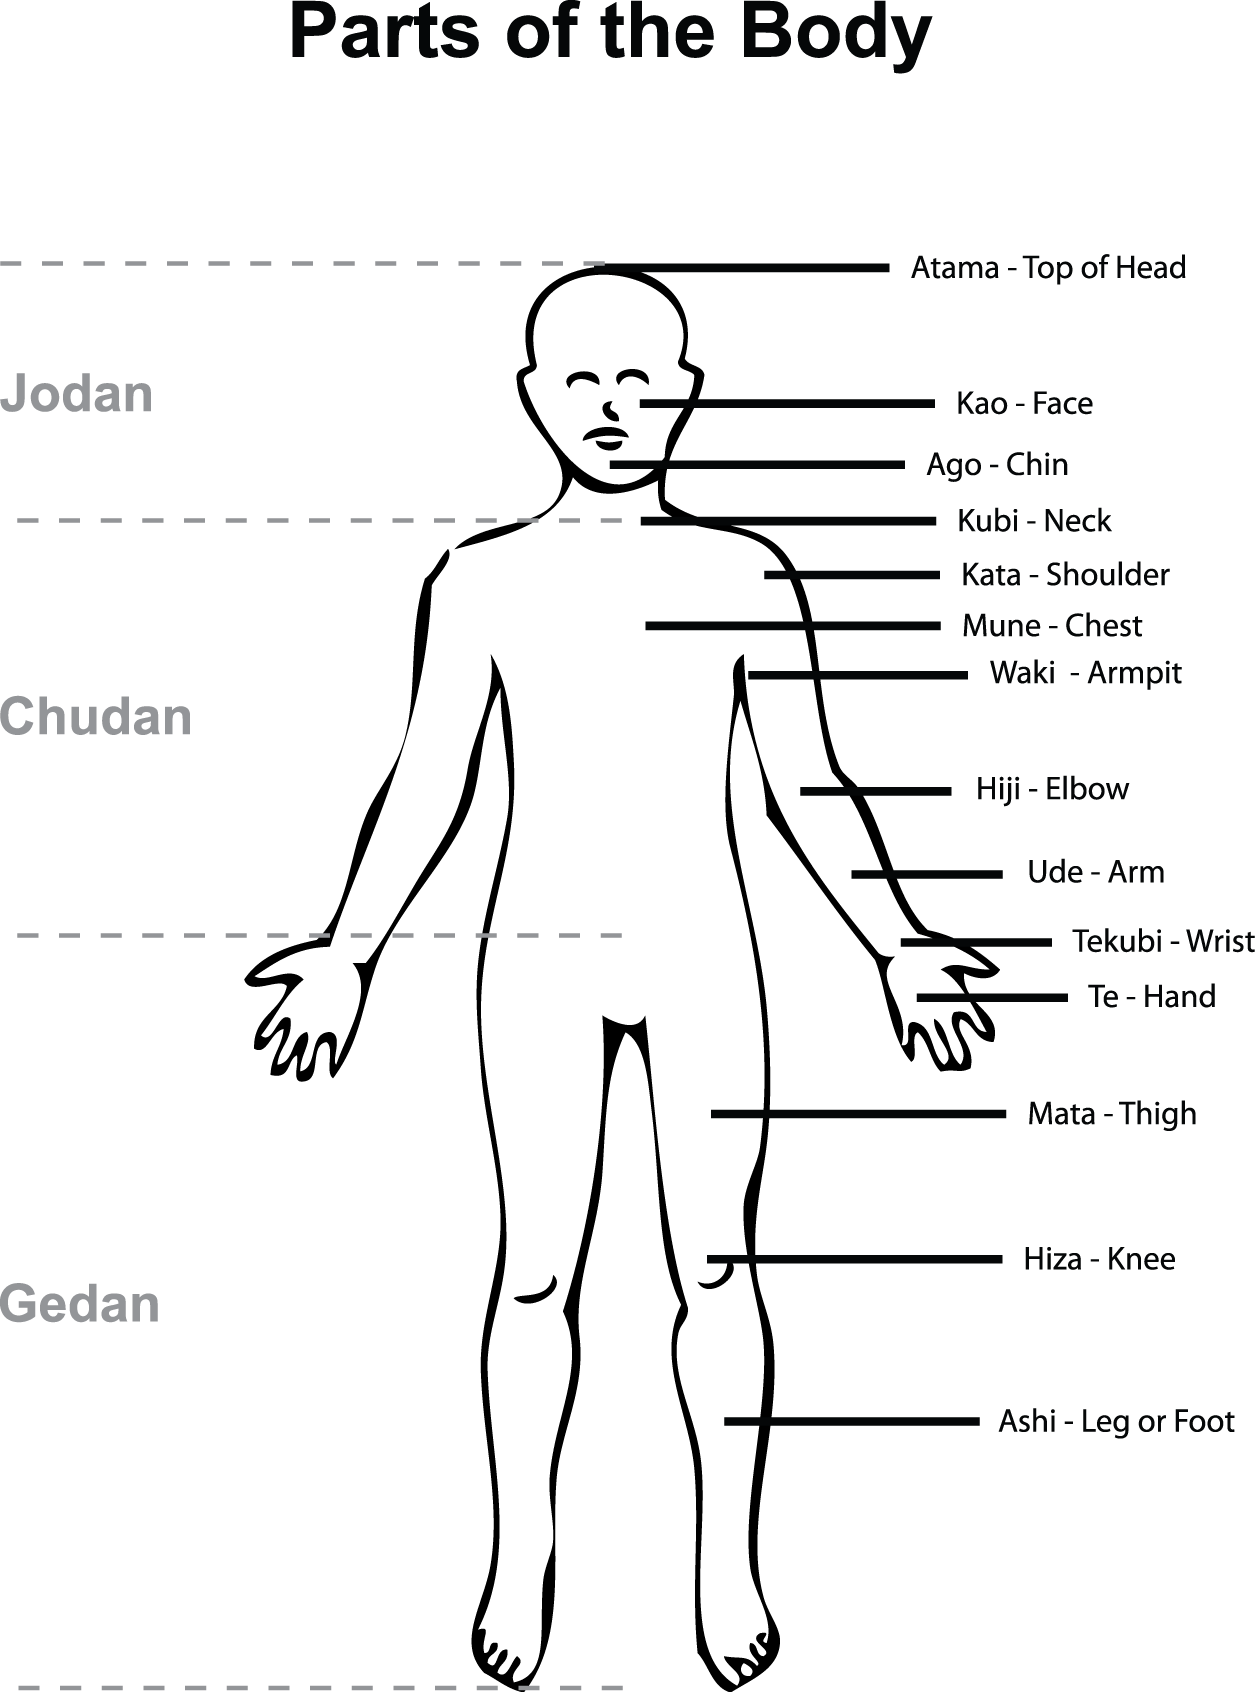 Parts Of The Body